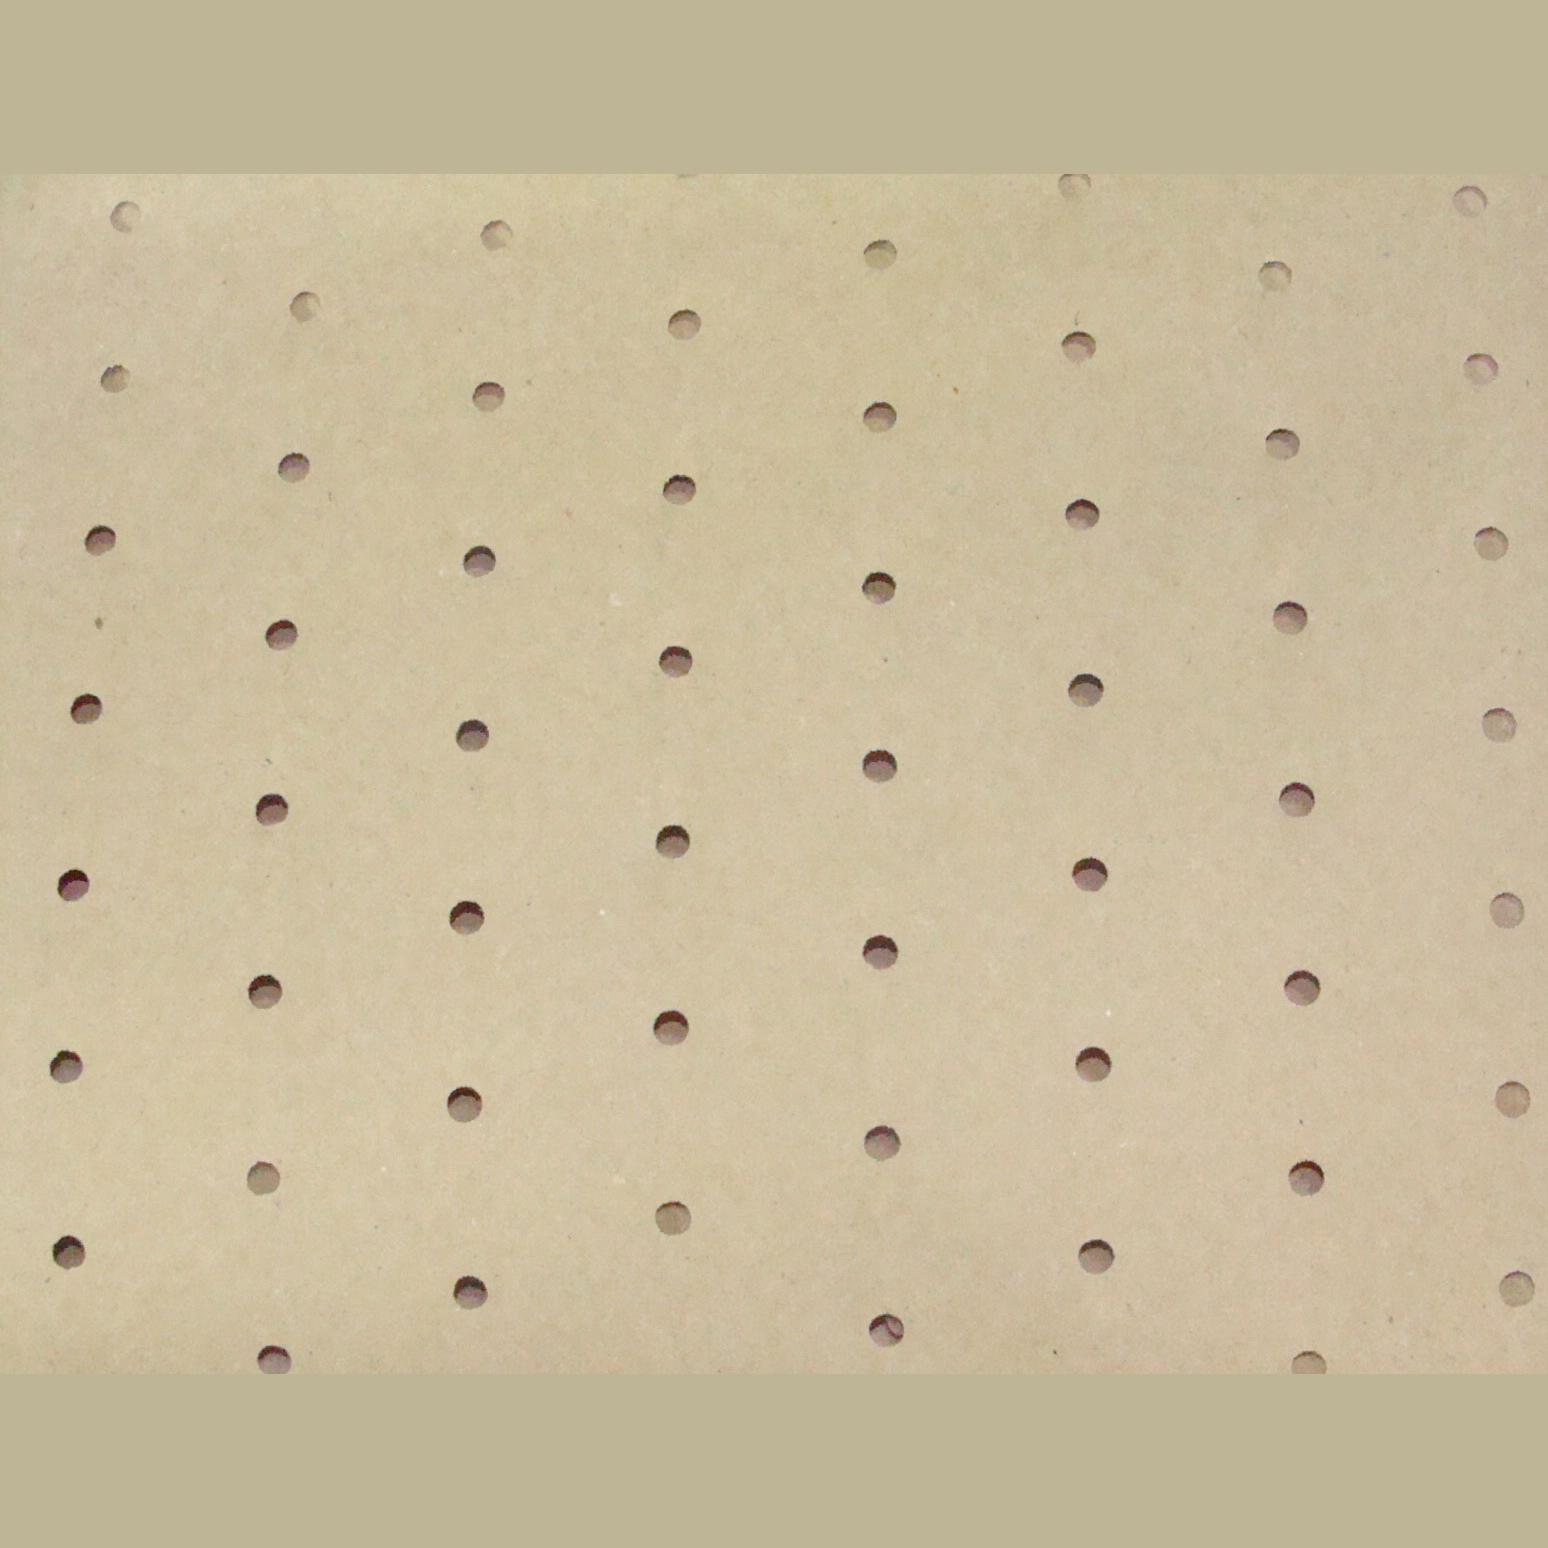 UP11060 152cm Perforated heavy duty underlay 110gsm x 150m-0